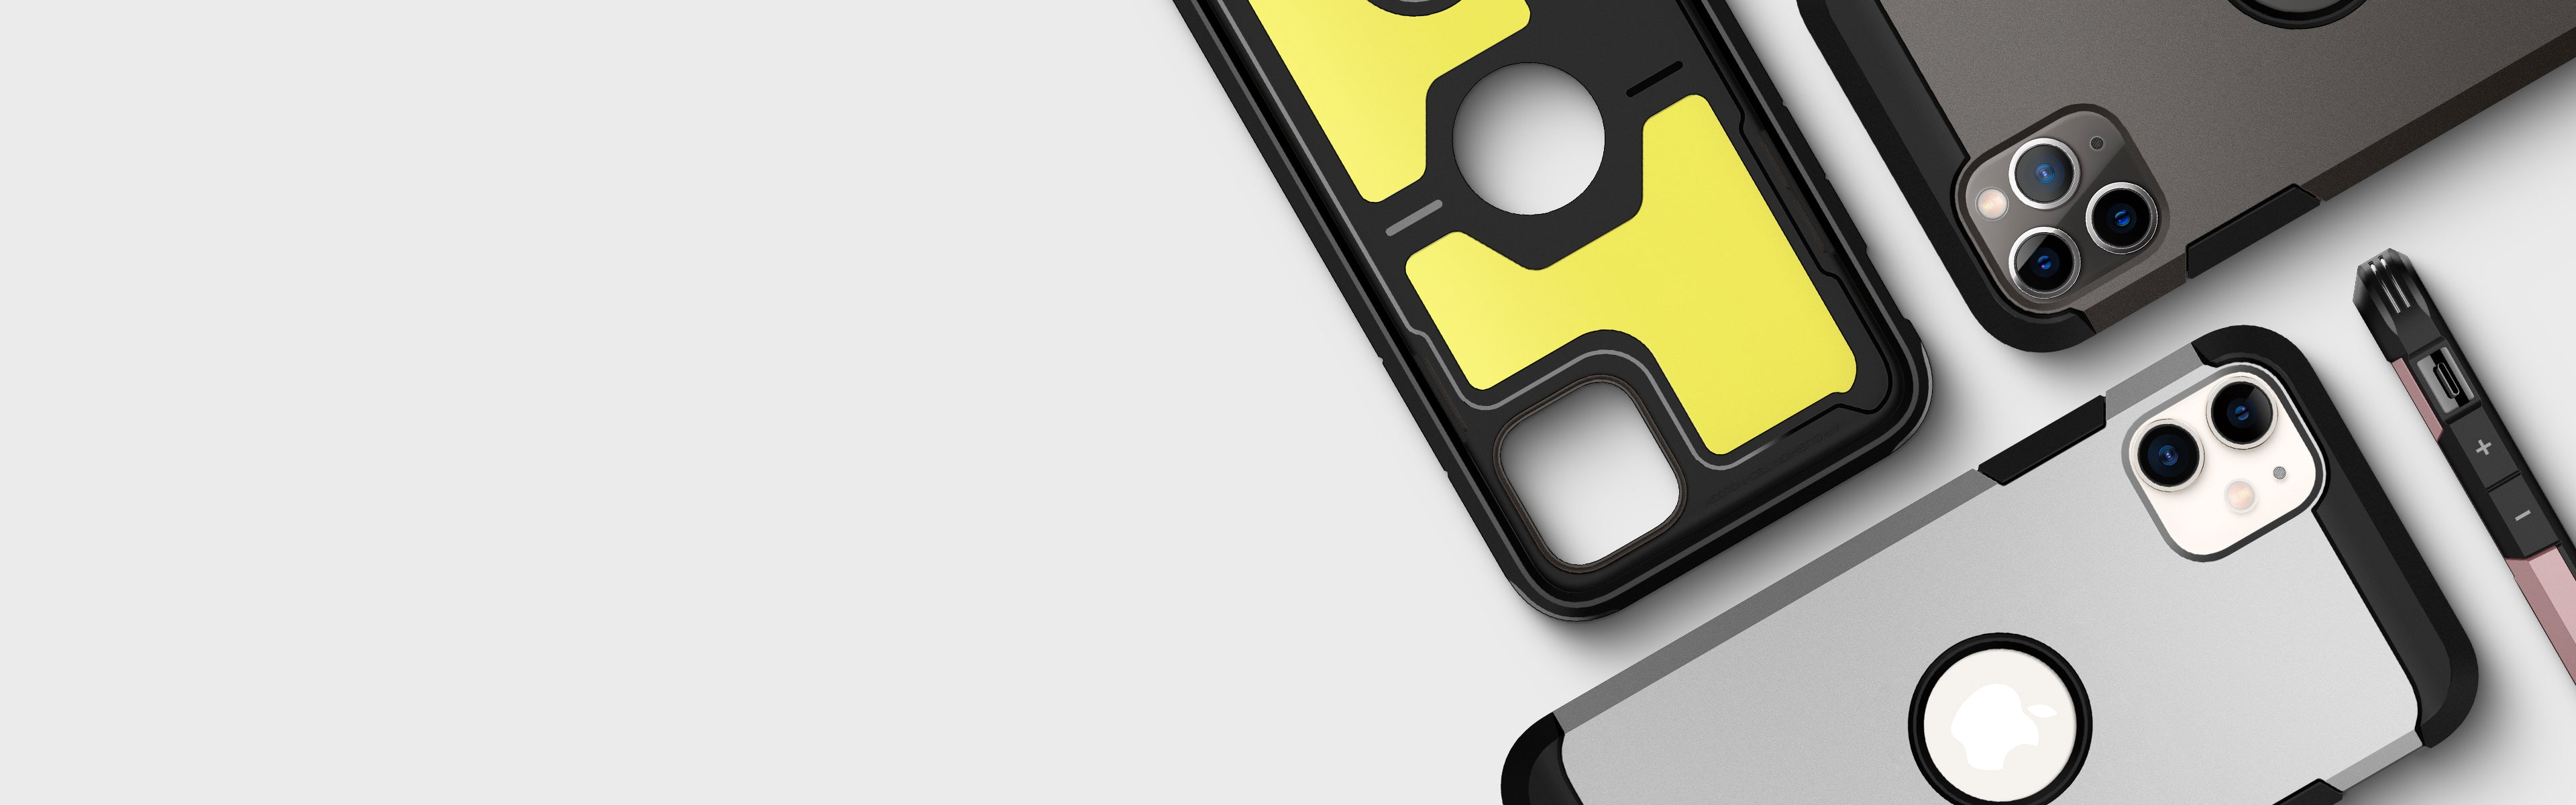 Pixel 4 / 4 XL Rugged Armor